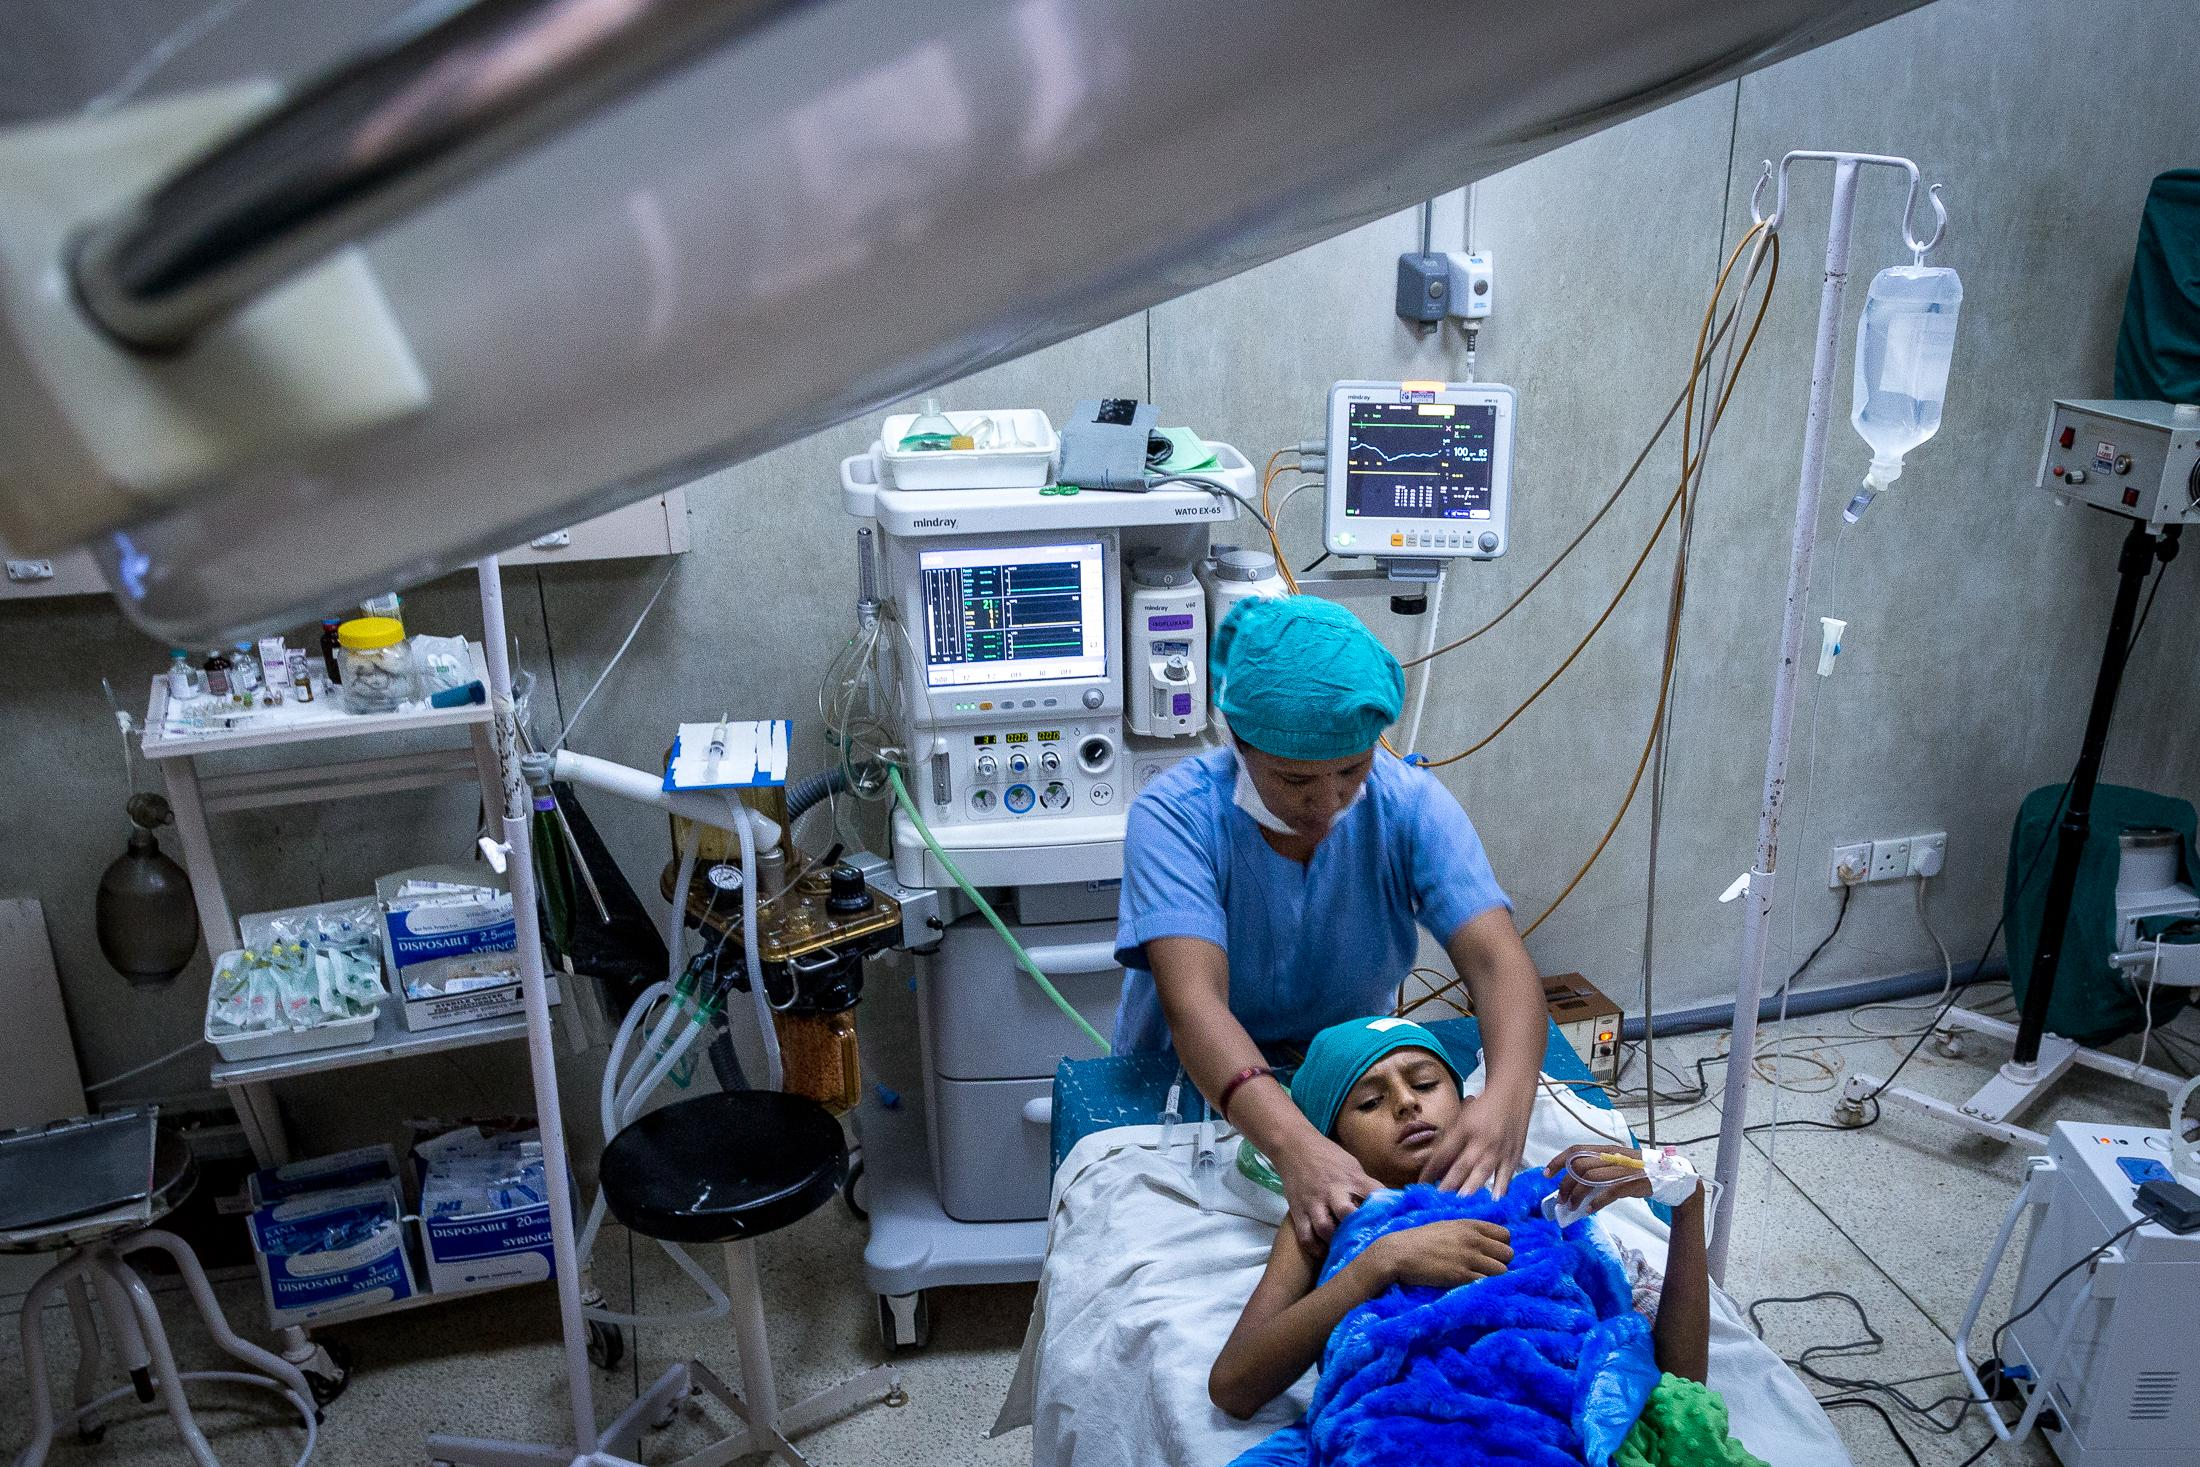 BANEPA, NEPAL - JULY 07, 2015: A nurse prepares a young boy for surgery for his injuries from the earthquake in a local hospital on July 07, 2015 in Banepa, Nepal. According to Handicap International, more than 65% of the people injured during the earthquake suffered fractures and 12% suffered injuries of the spinal cord. Photo: © Omar Havana